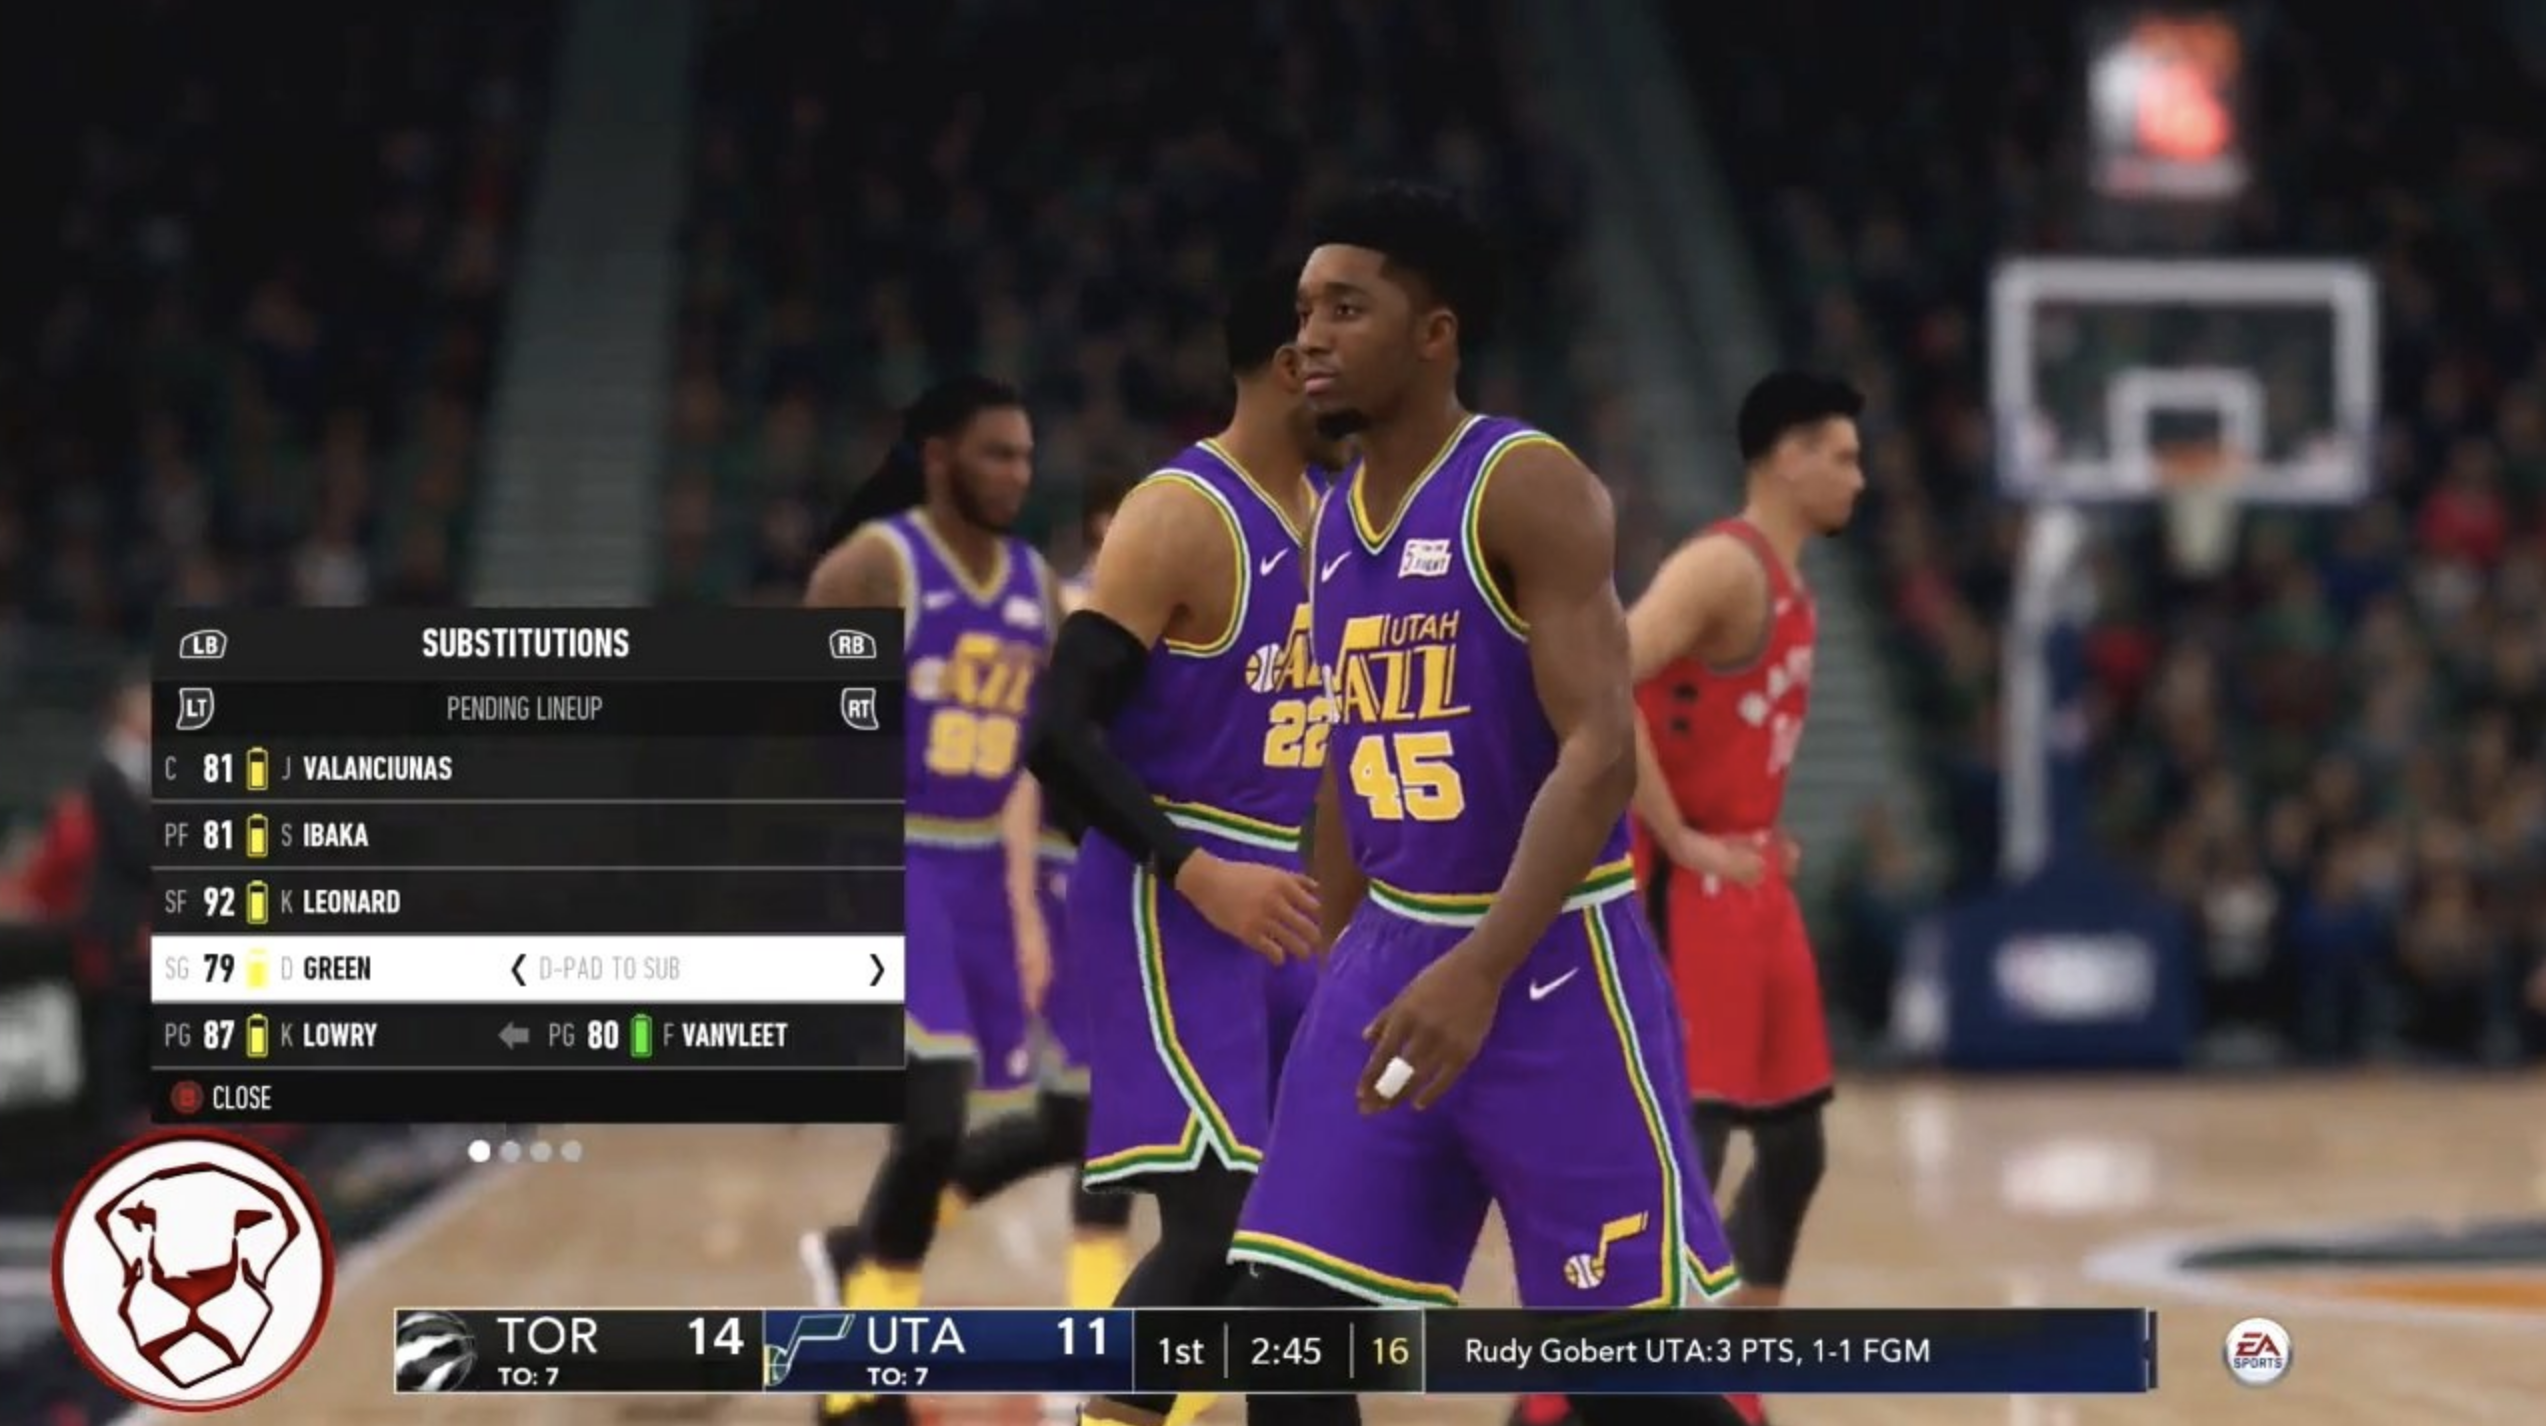 c946a92f89c First look at Utah Jazz purple throwback uniforms - SLC Dunk